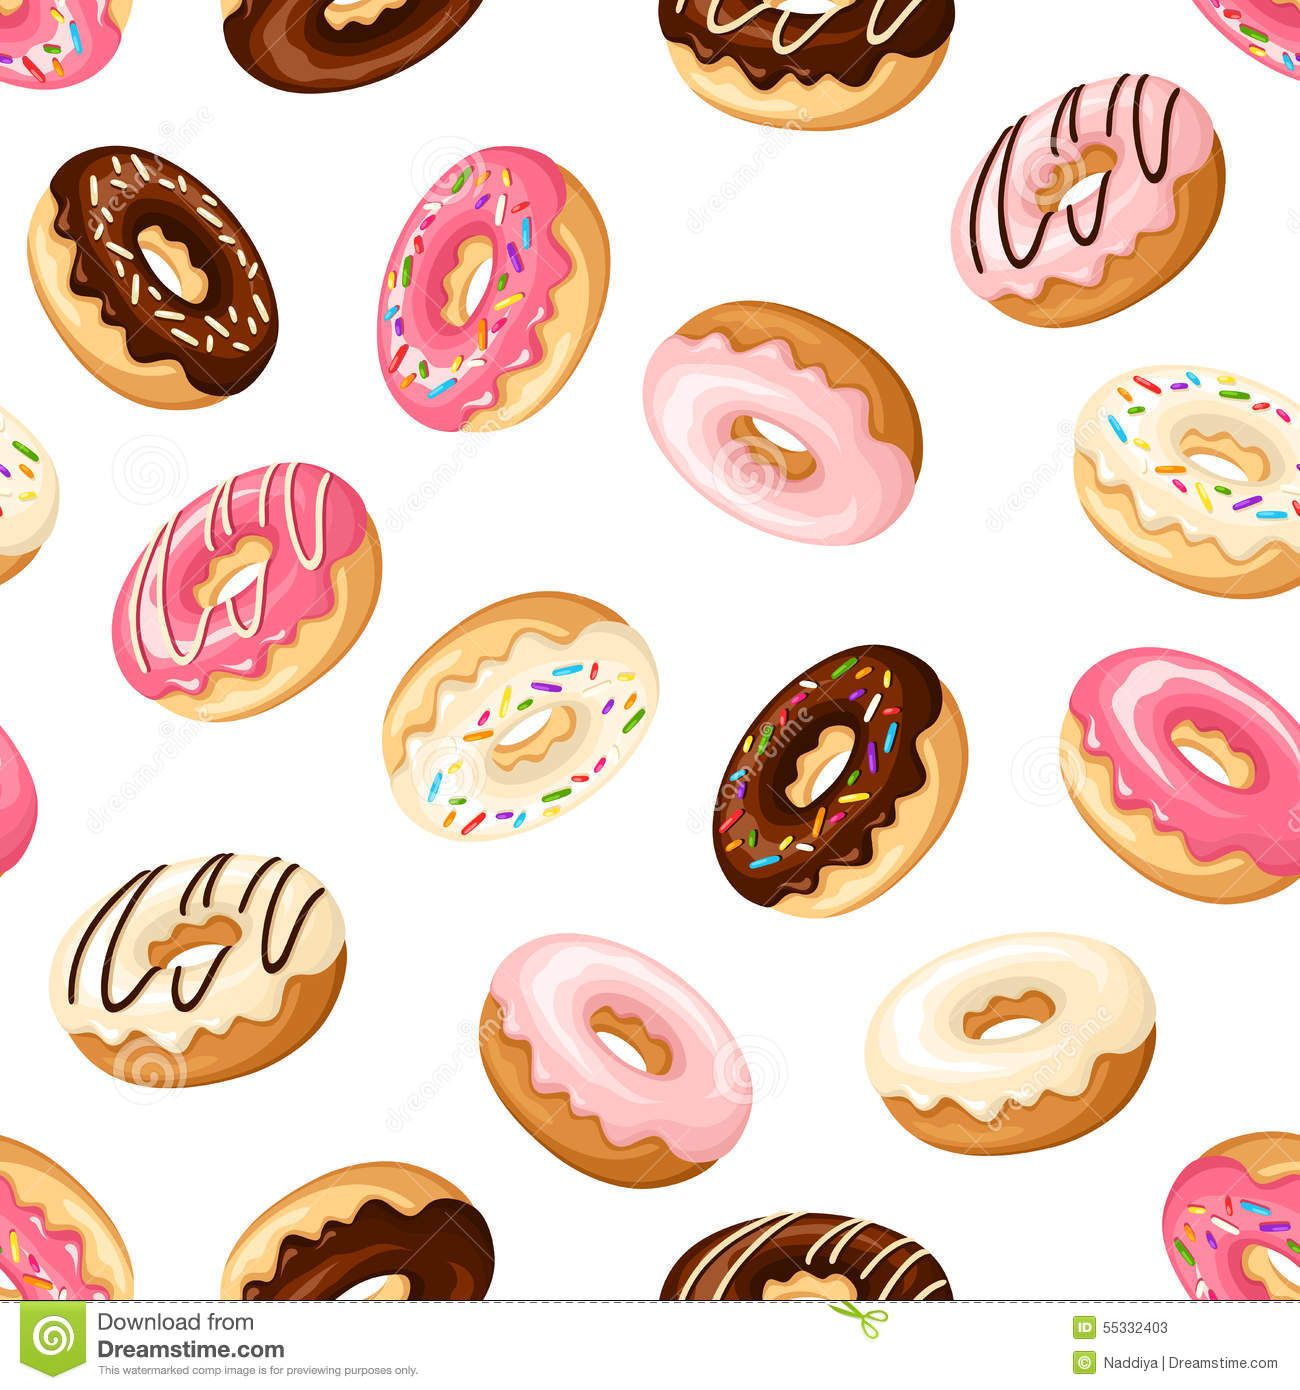 Doughnut clipart background free. Seamless with donuts vector